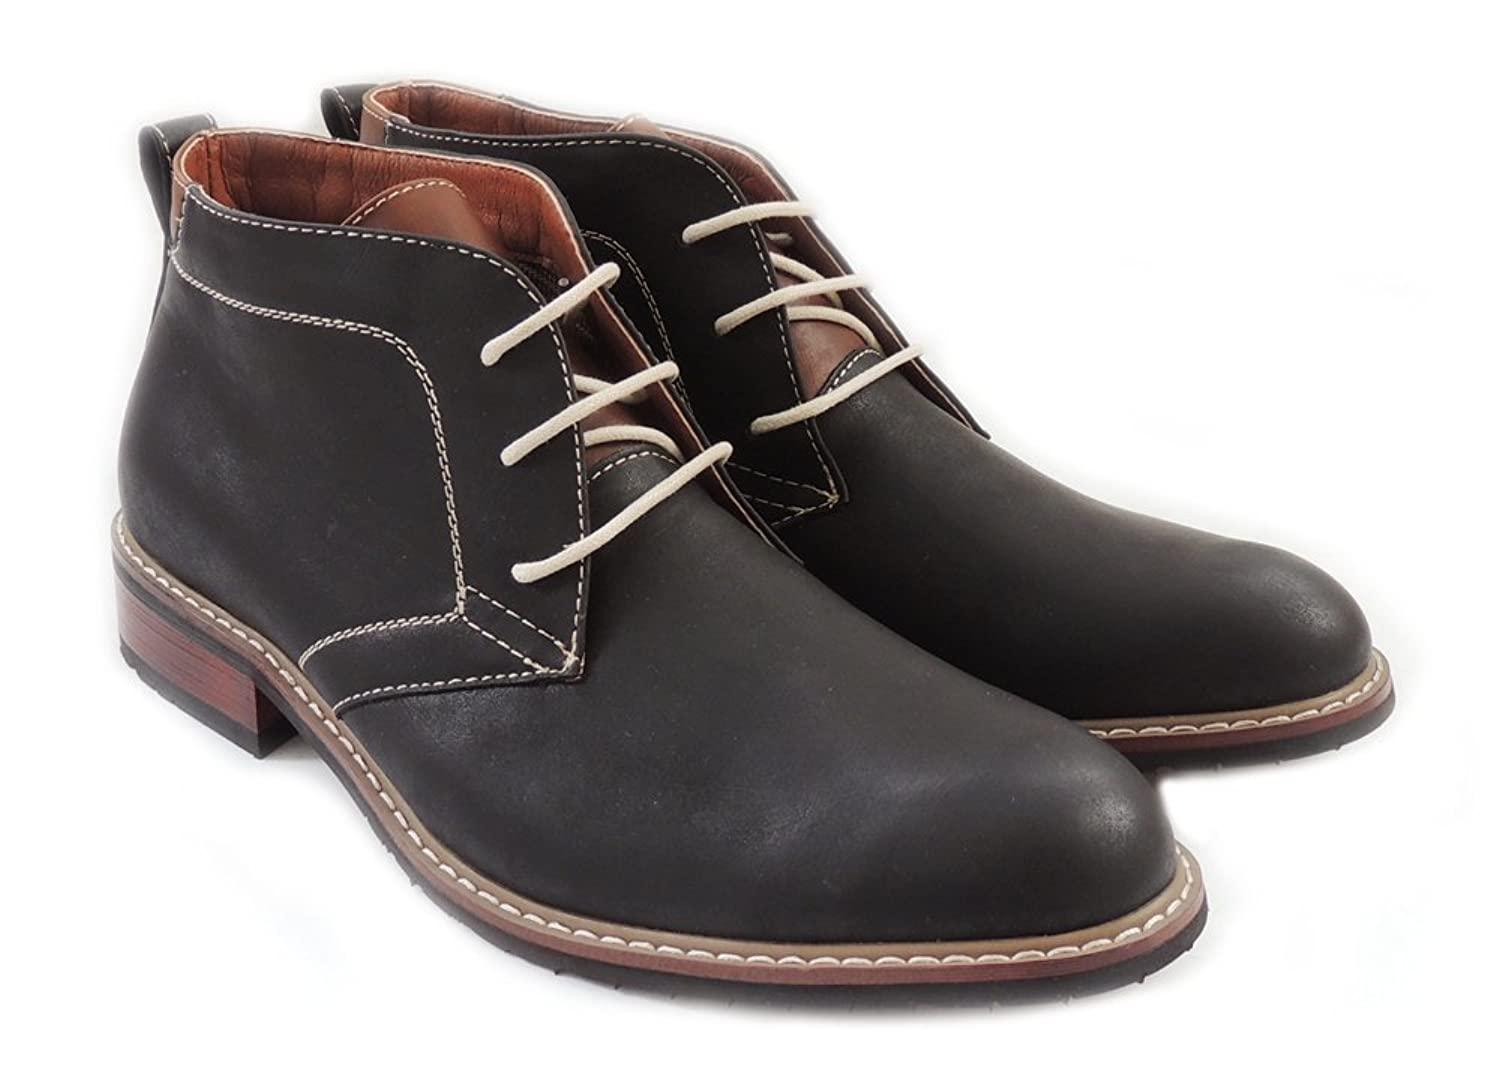 NEW FASHION MENS ANKLE BOOTS LEATHER LINED CHUKKA LACE UP DRESSY SHOES MFA506008 BLACK